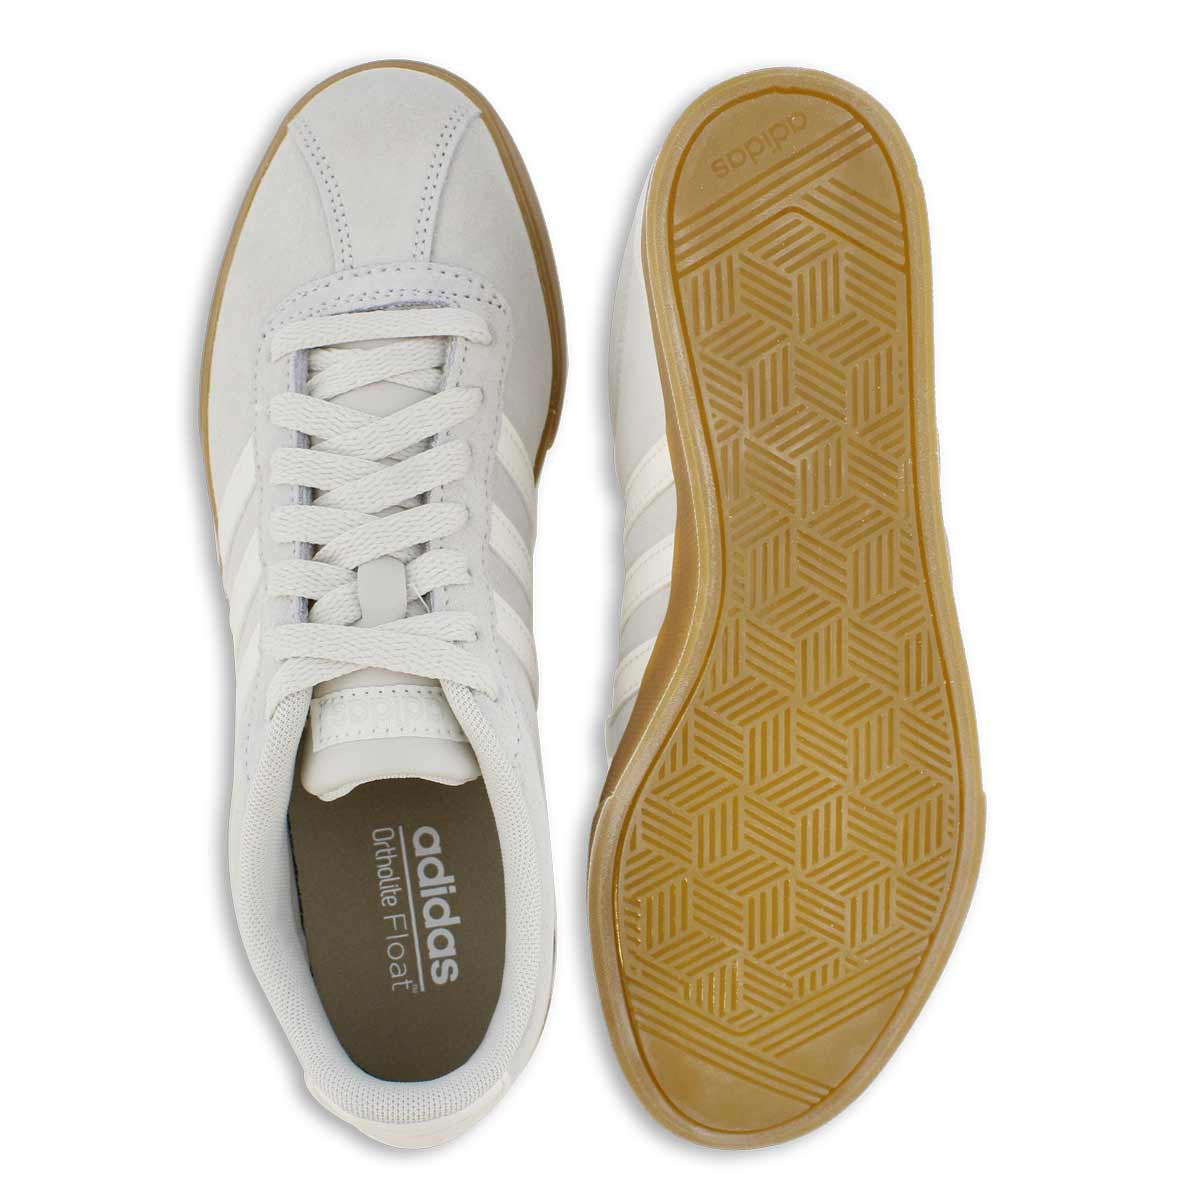 Lds Courtset raw wht/wht lace up sneaker